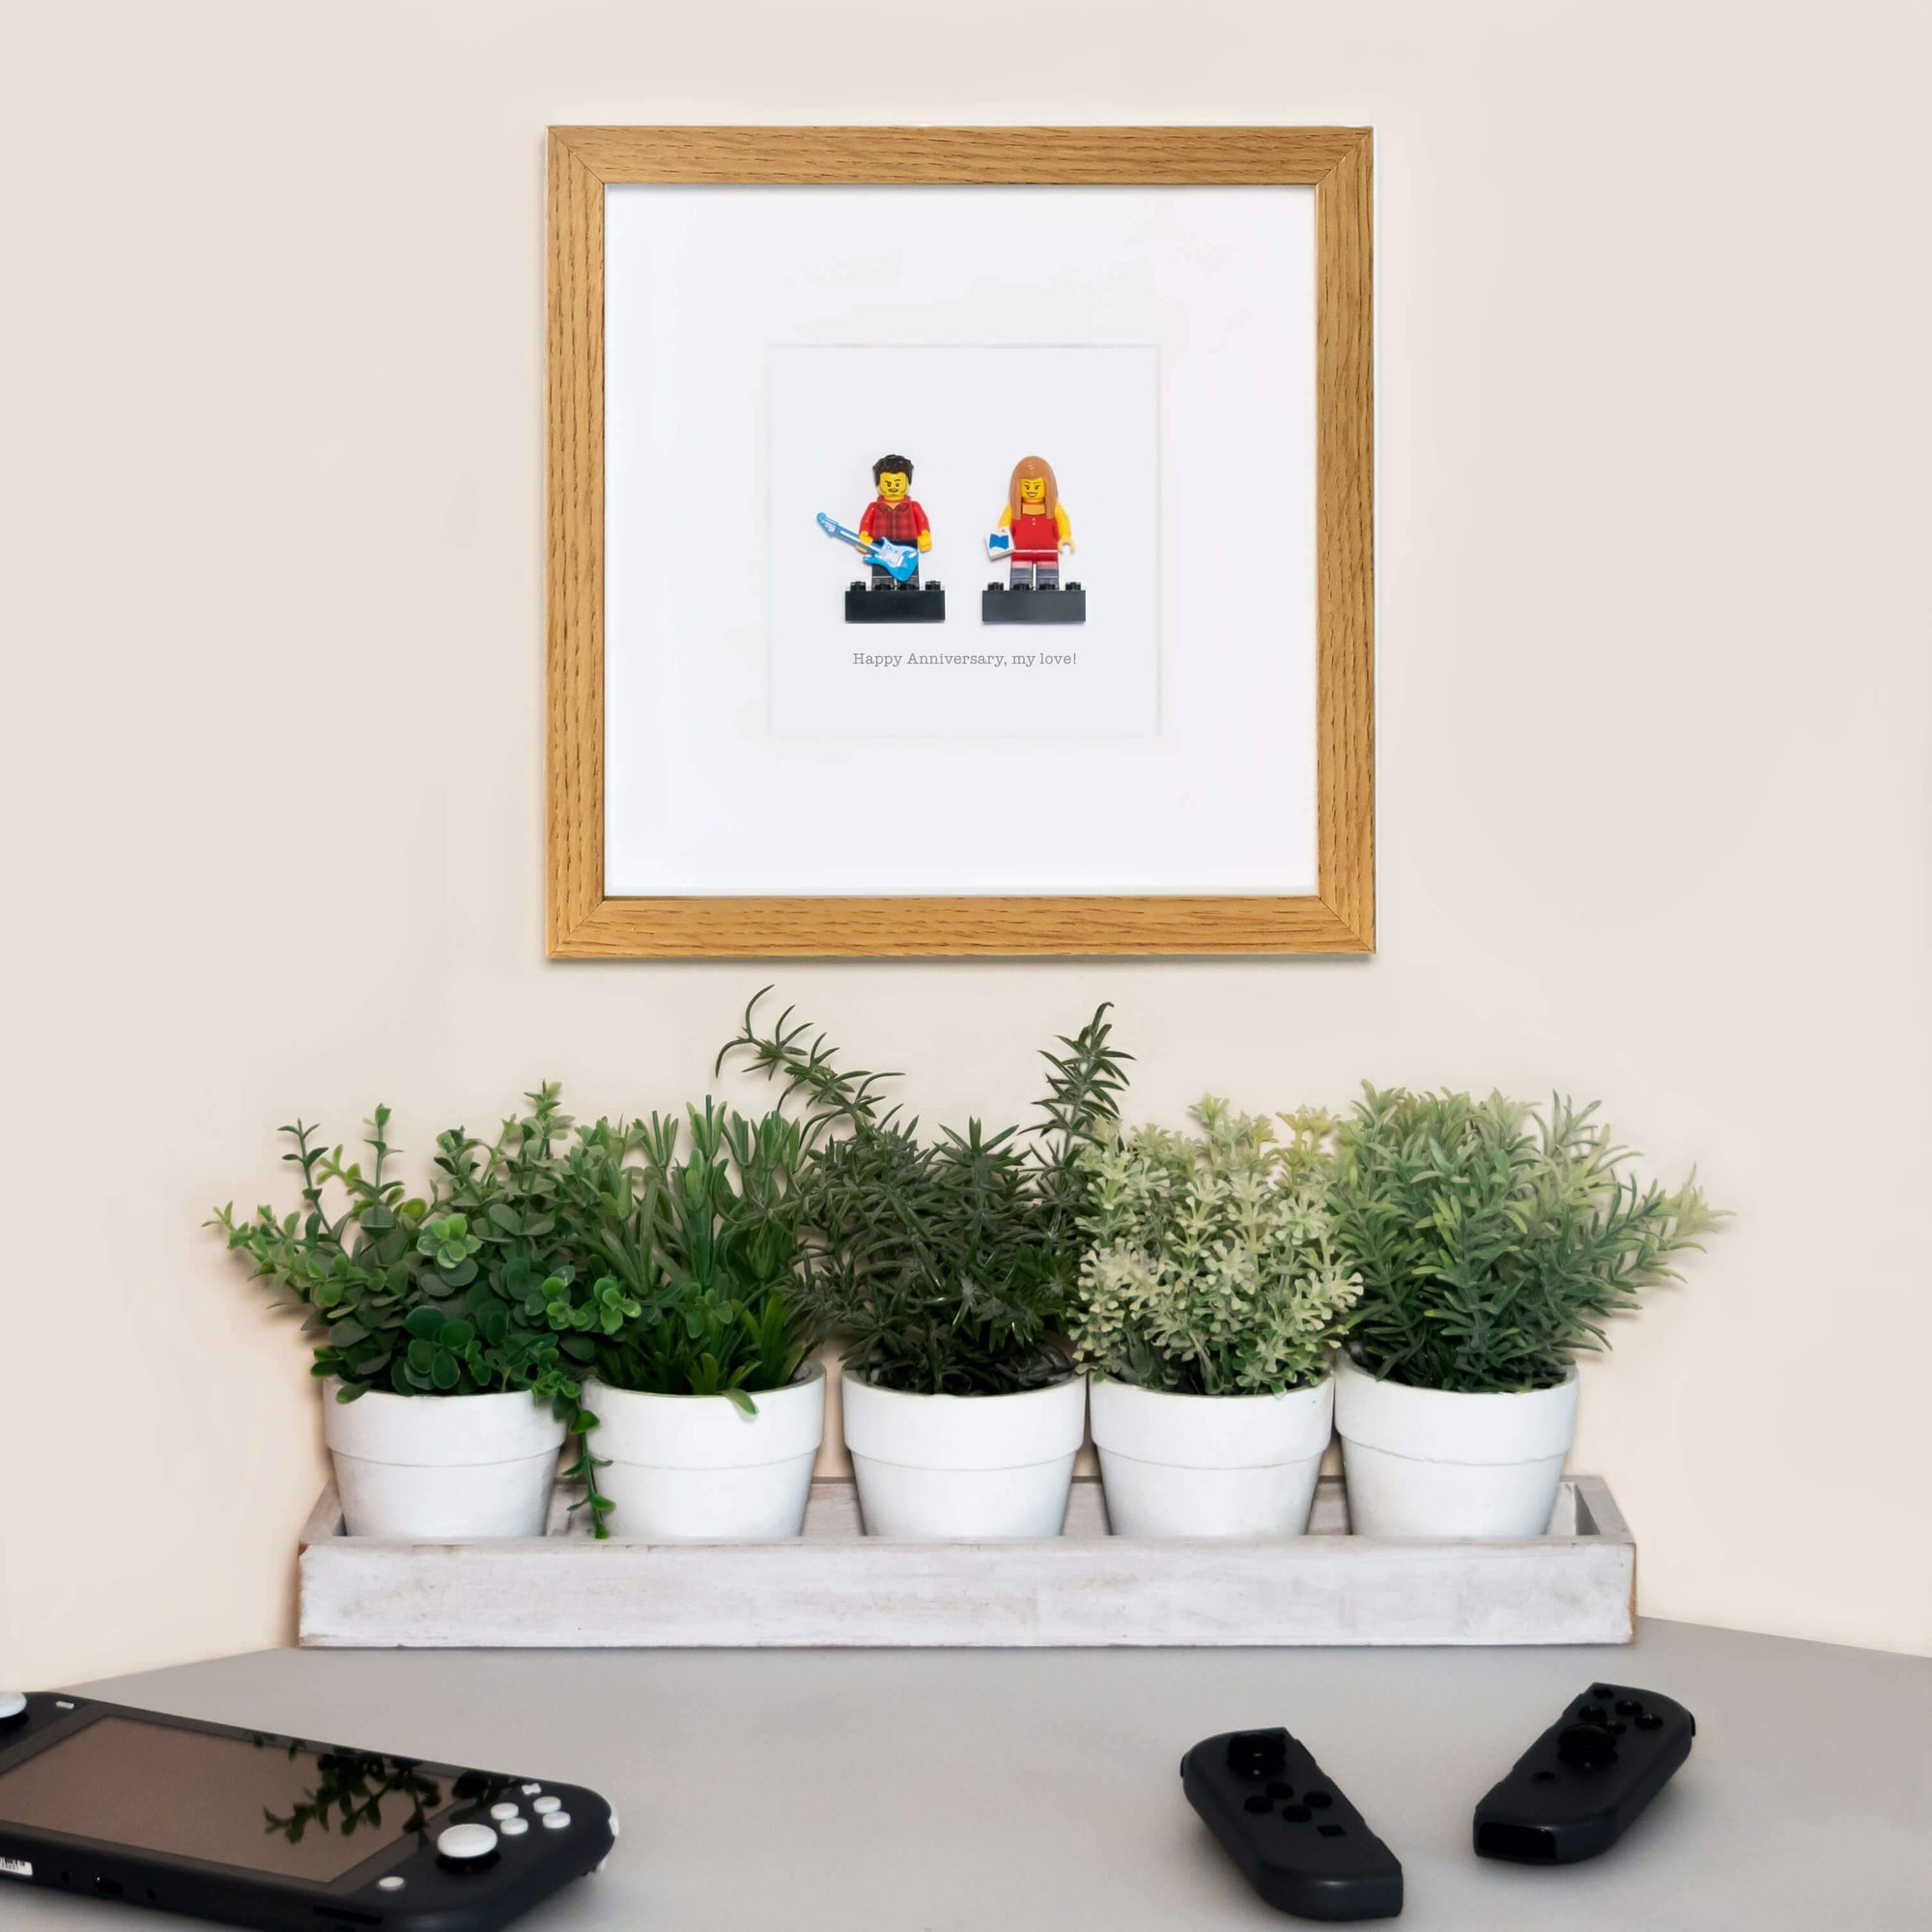 Plastic People - Personalised Mini Brick Figure in Frame2 Figures